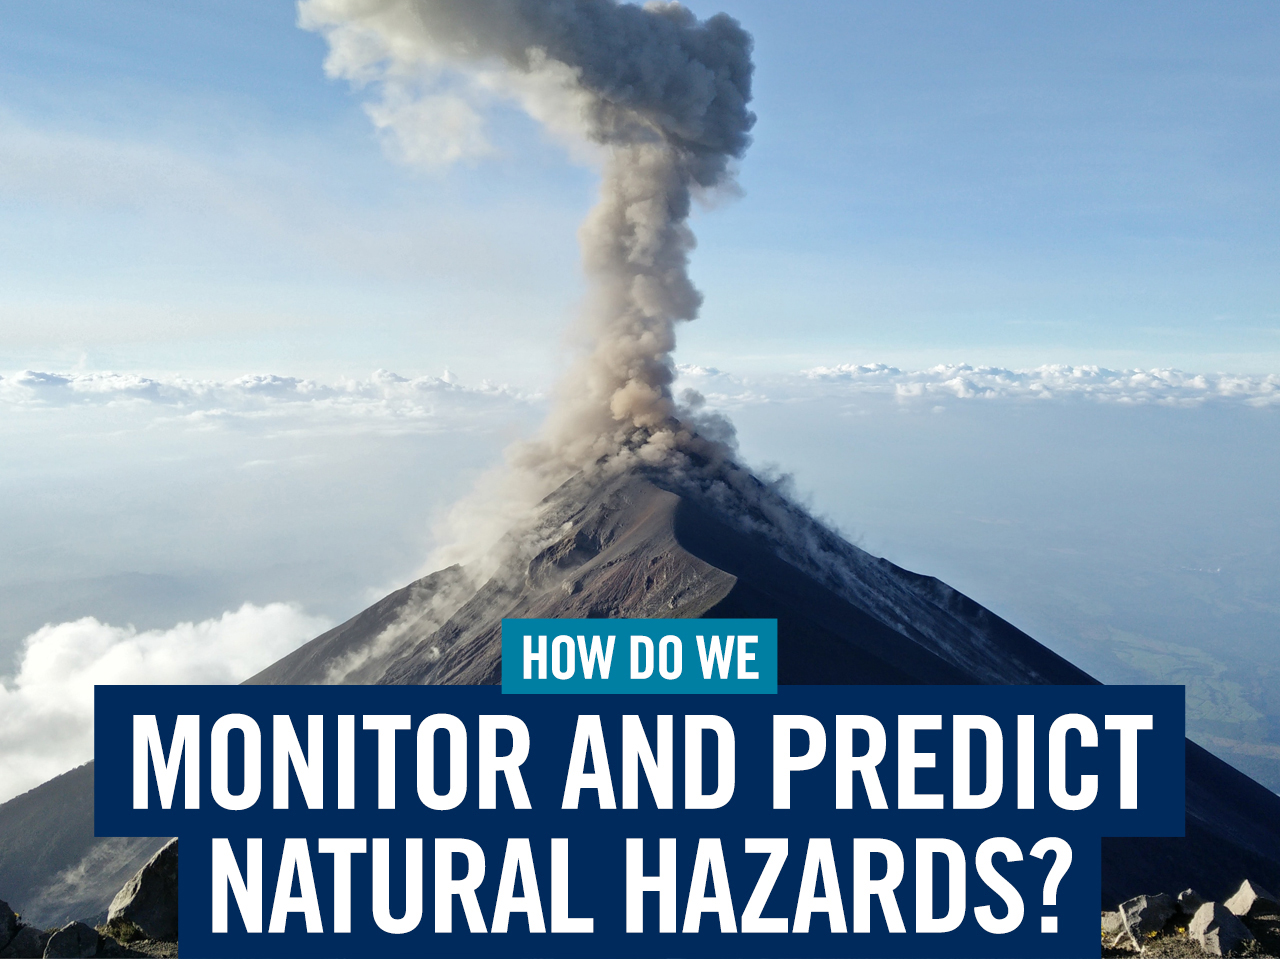 How do we monitor and predict natural hazards?